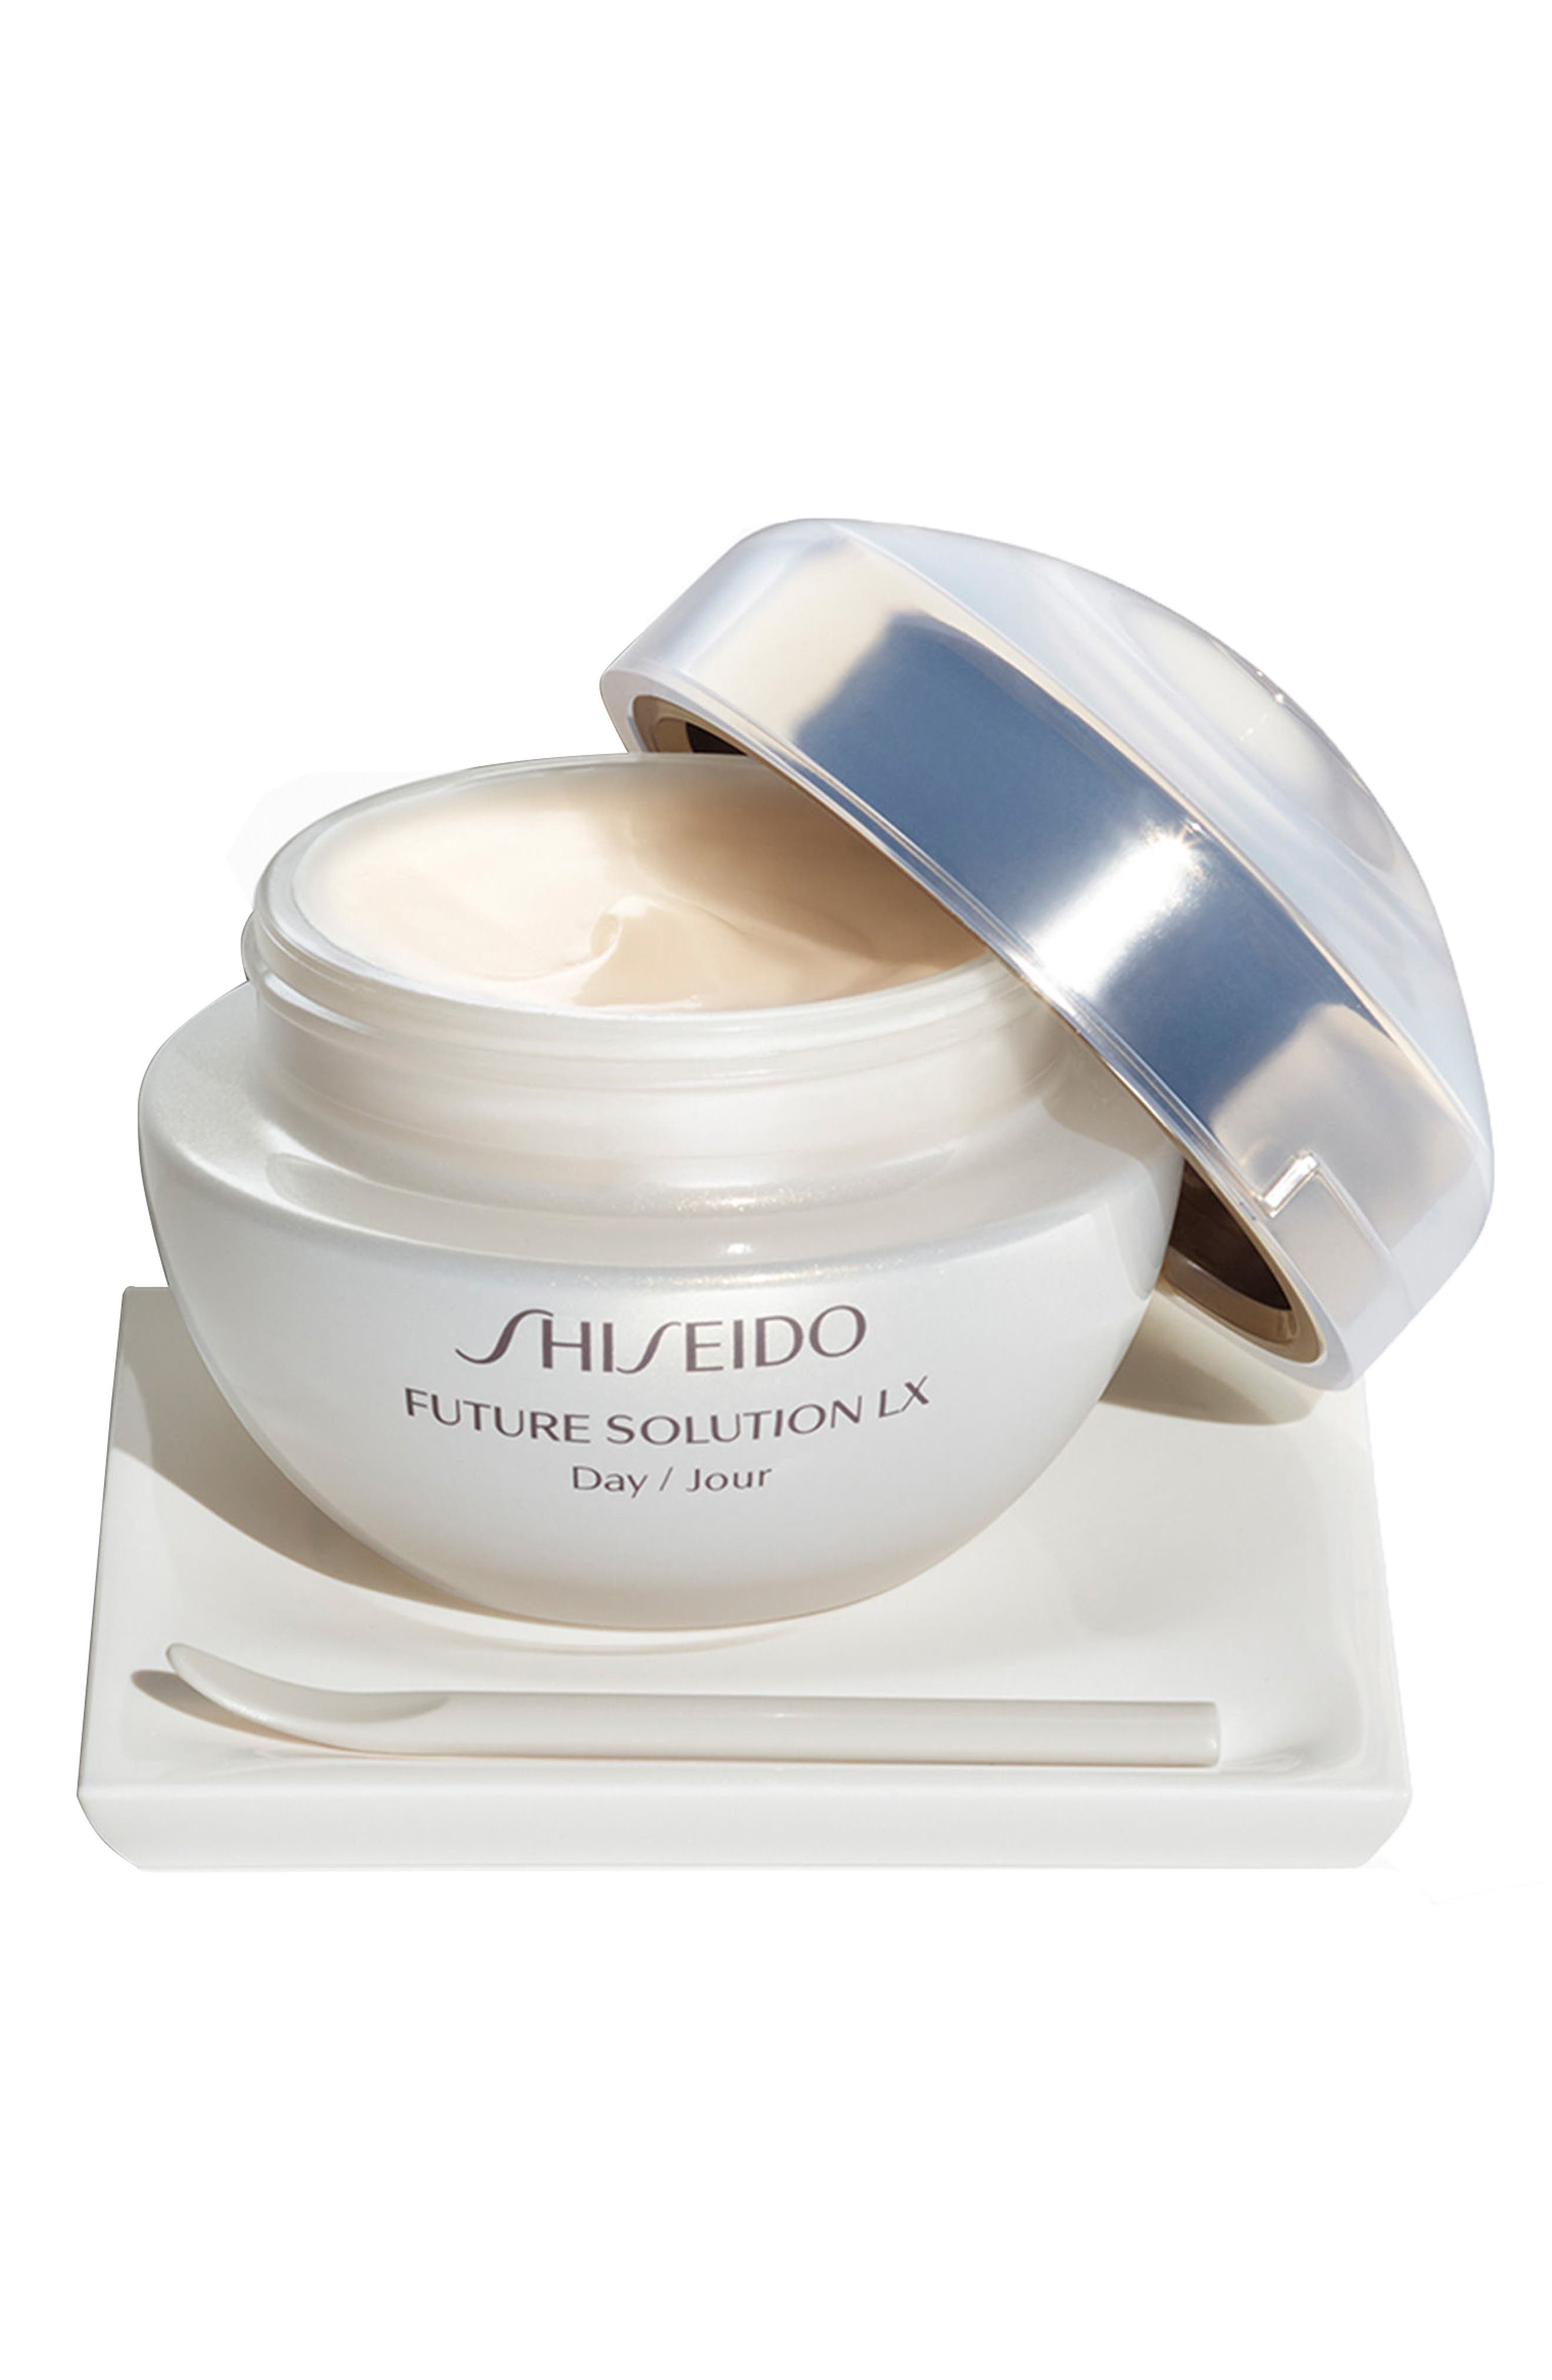 SHISEIDO, Future Solution LX Total Protective Cream Broad Spectrum SPF 20 Sunscreen, Main thumbnail 1, color, NO COLOR